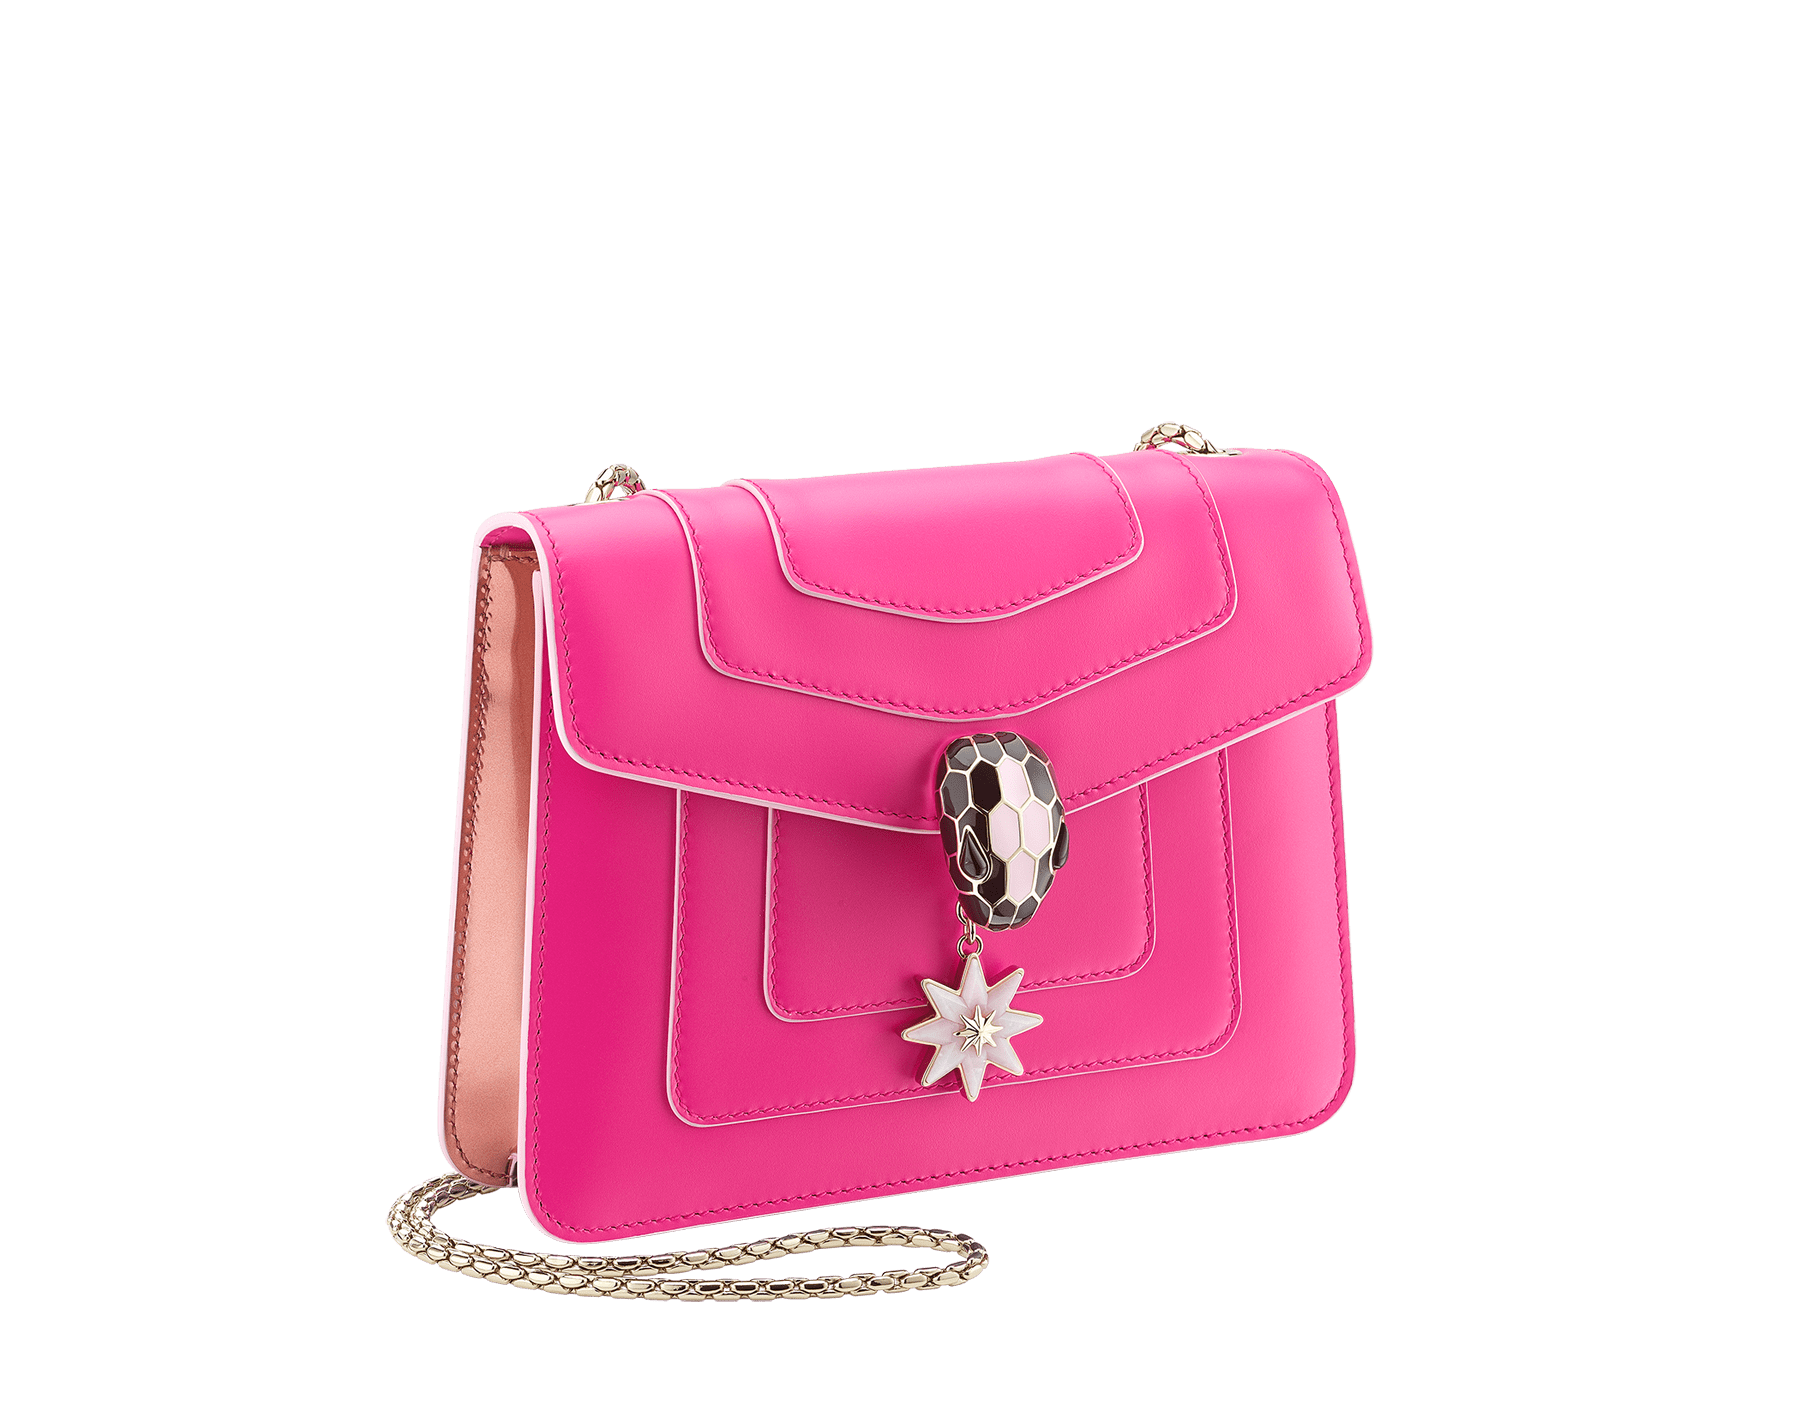 Serpenti Forever Holiday Season crossbody bag in flash amethyst calf leather and rose quartz brushed metallic calf leather. Snakehead closure in light gold plated brass embellished with black and sakura pink enamel, black onyx eyes and a pink opal eight-pointed star charm. 289367 image 2